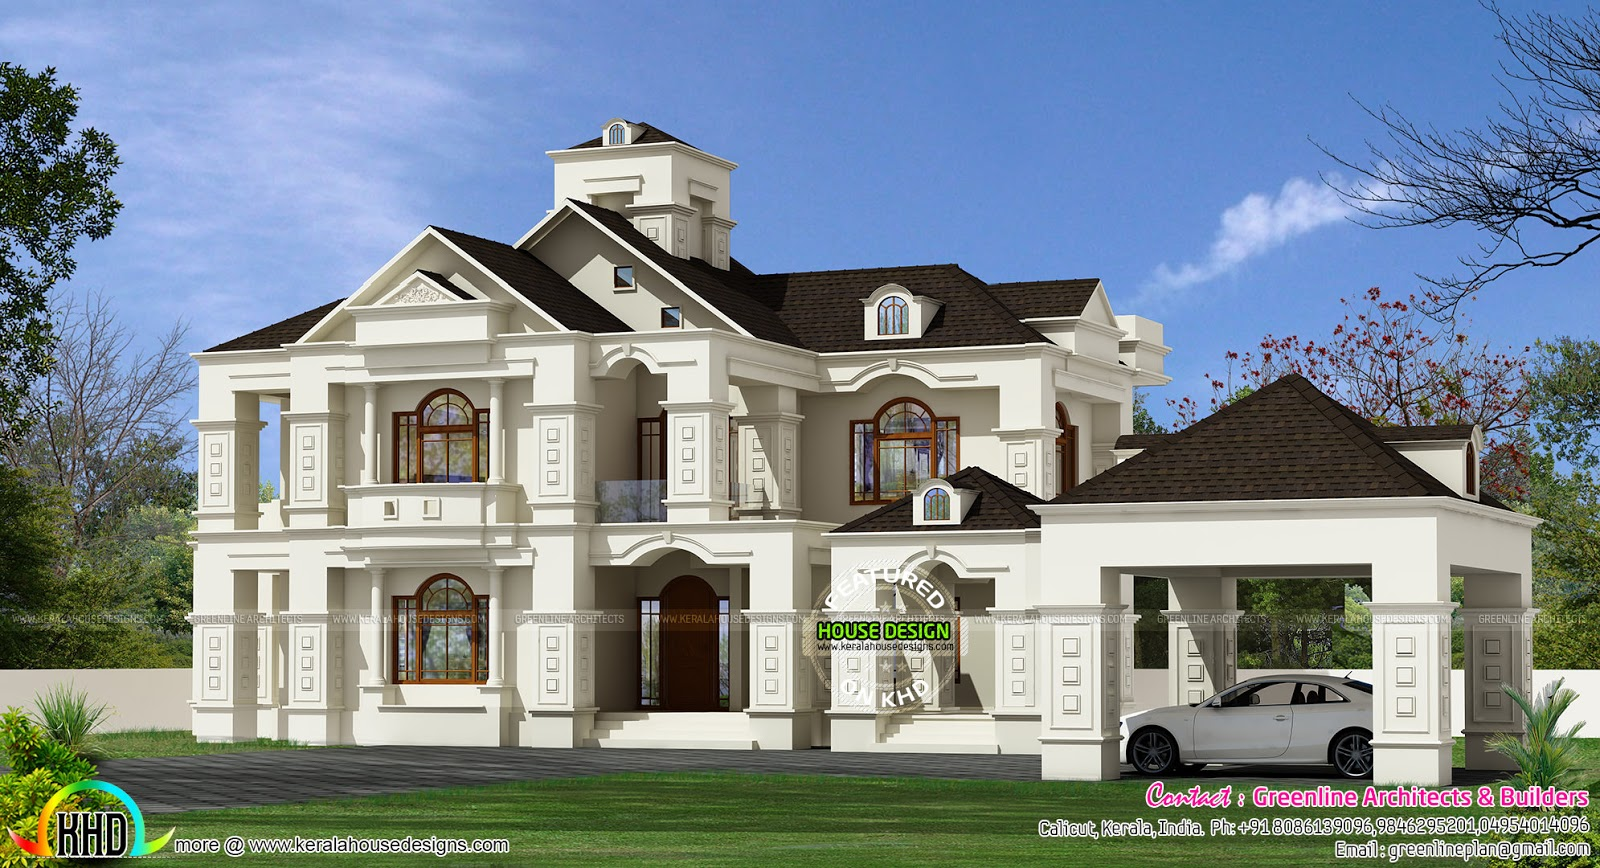 Colonial type modern luxury home - Colonial Luxury House Plans 5 Bedroom Luxury Colonial Home 3150 Sq Ft Kerala Home